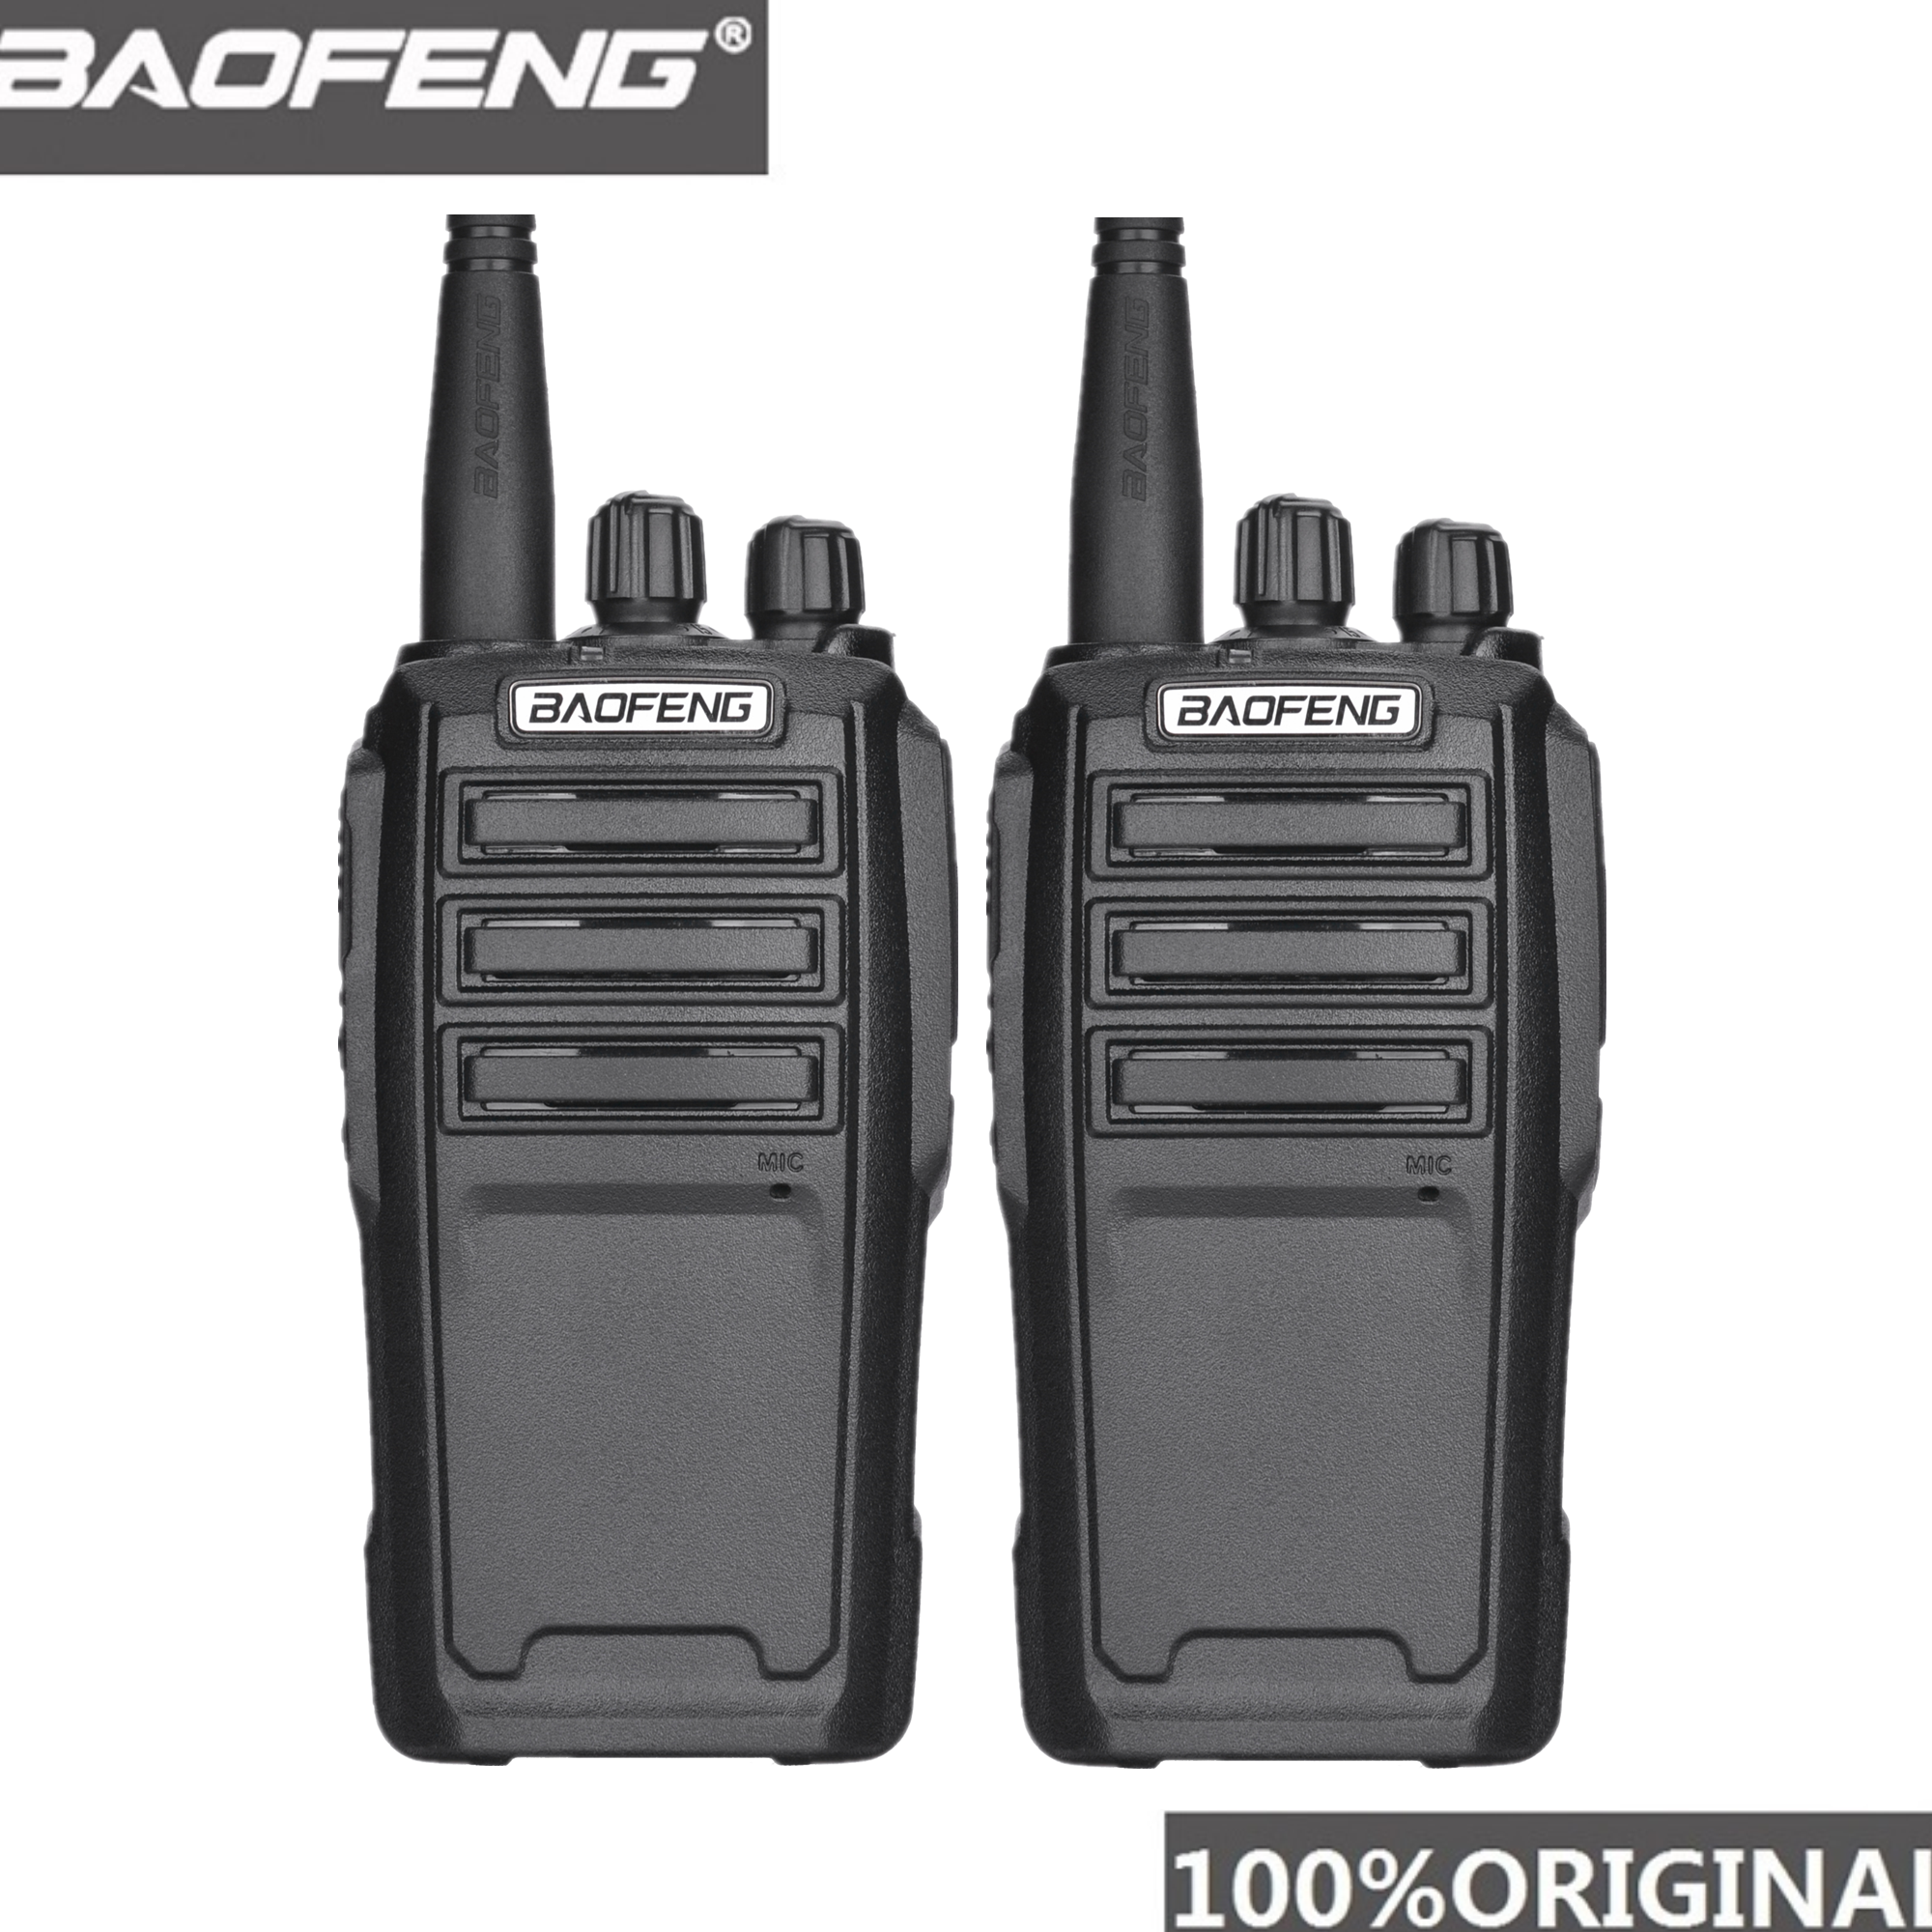 Baofeng HF Transceiver Walkie-Talkie Ham-Radio Handheld 2PCS 8W Security-Guard-Equipment